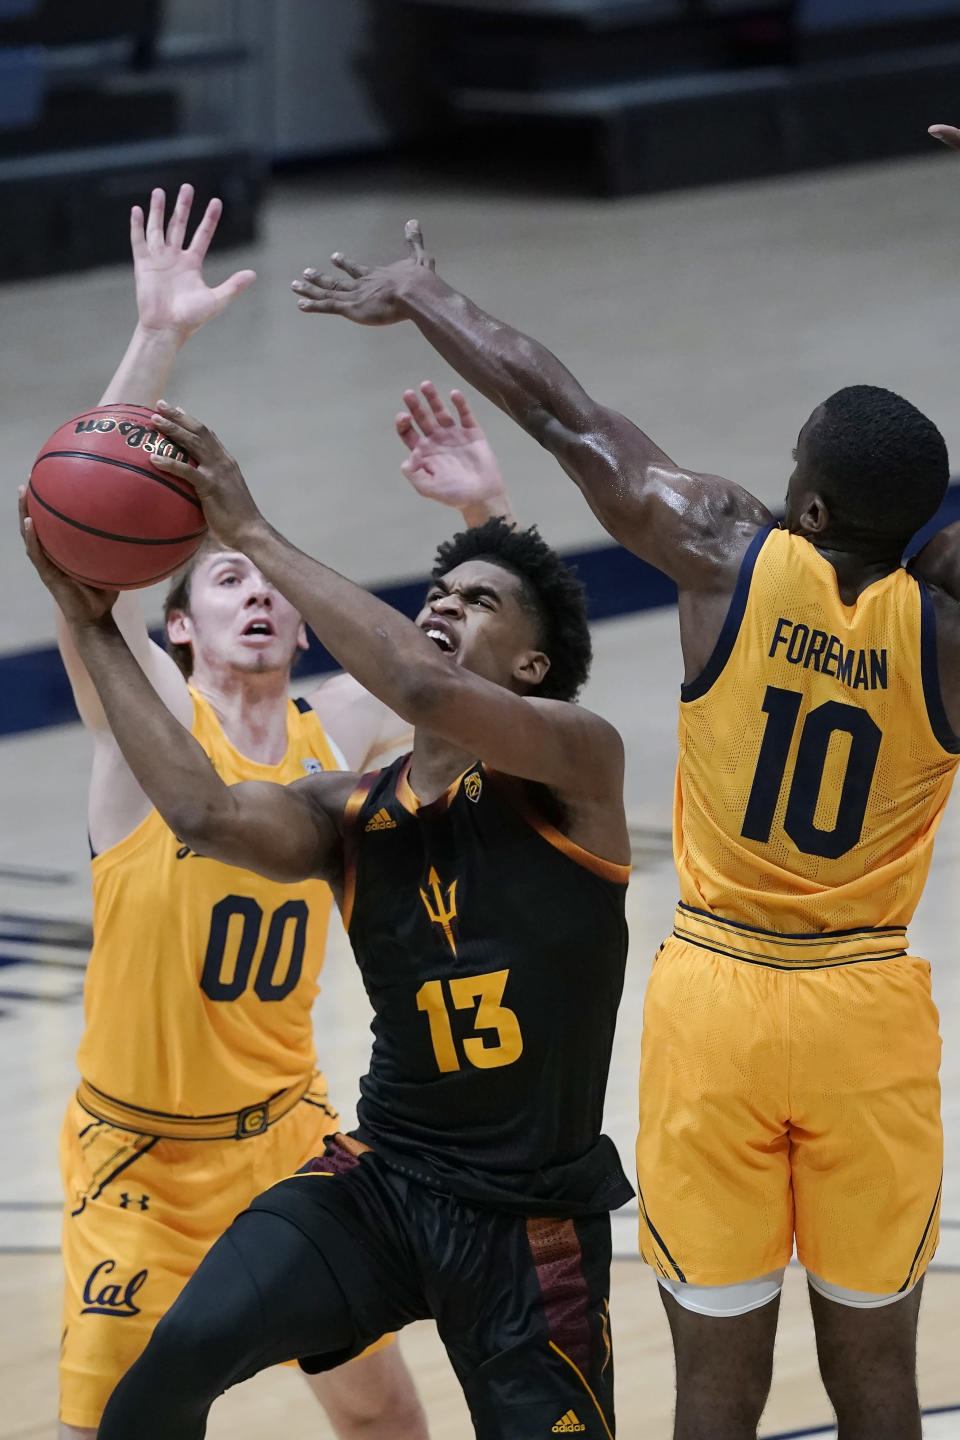 Arizona State guard Josh Christopher (13) shoots between California guards Ryan Betley (00) and Makale Foreman (10) during the first half of an NCAA college basketball game in Berkeley, Calif., Thursday, Dec. 3, 2020. (AP Photo/Jeff Chiu)